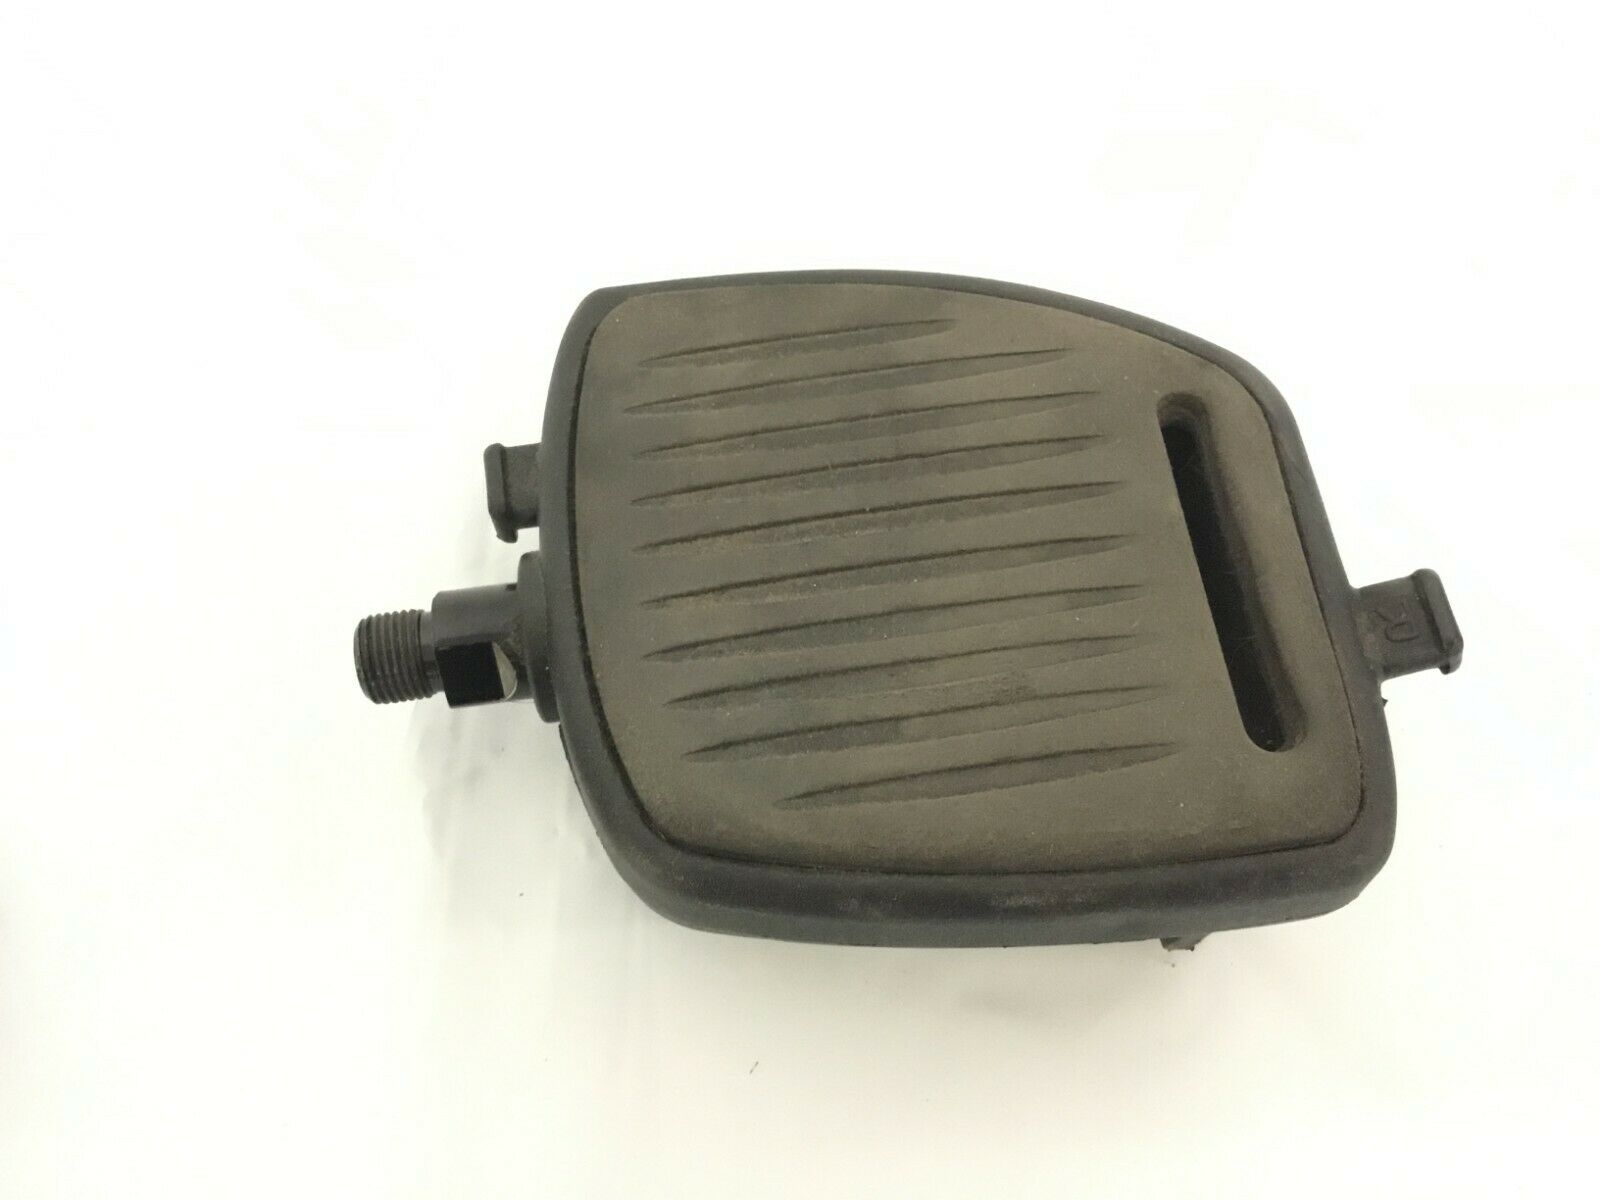 Spirit Fitness CR800 Recumbent Bike Drive Pulley part #PP060090-A1